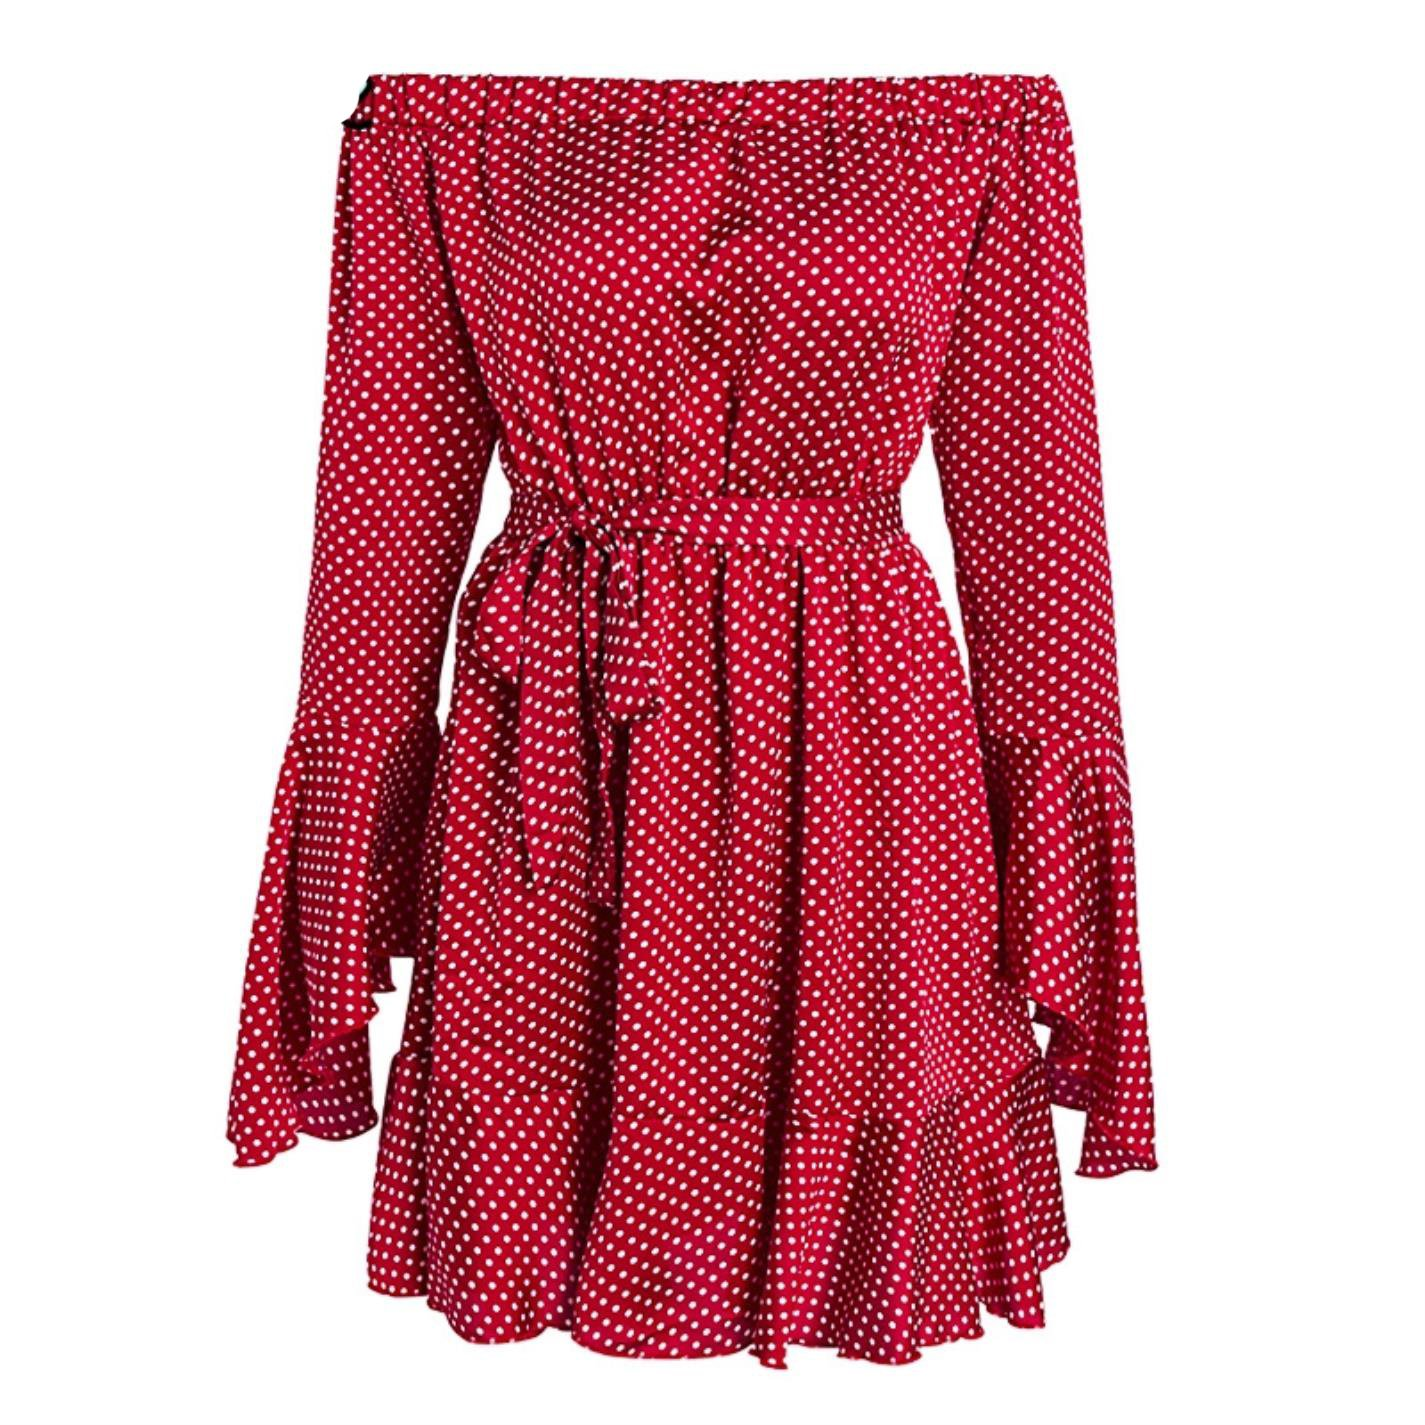 Red kgtYGTCn Women Off Shoulder Dot Short Ruffle Long Sleeve Sash Casual Dress